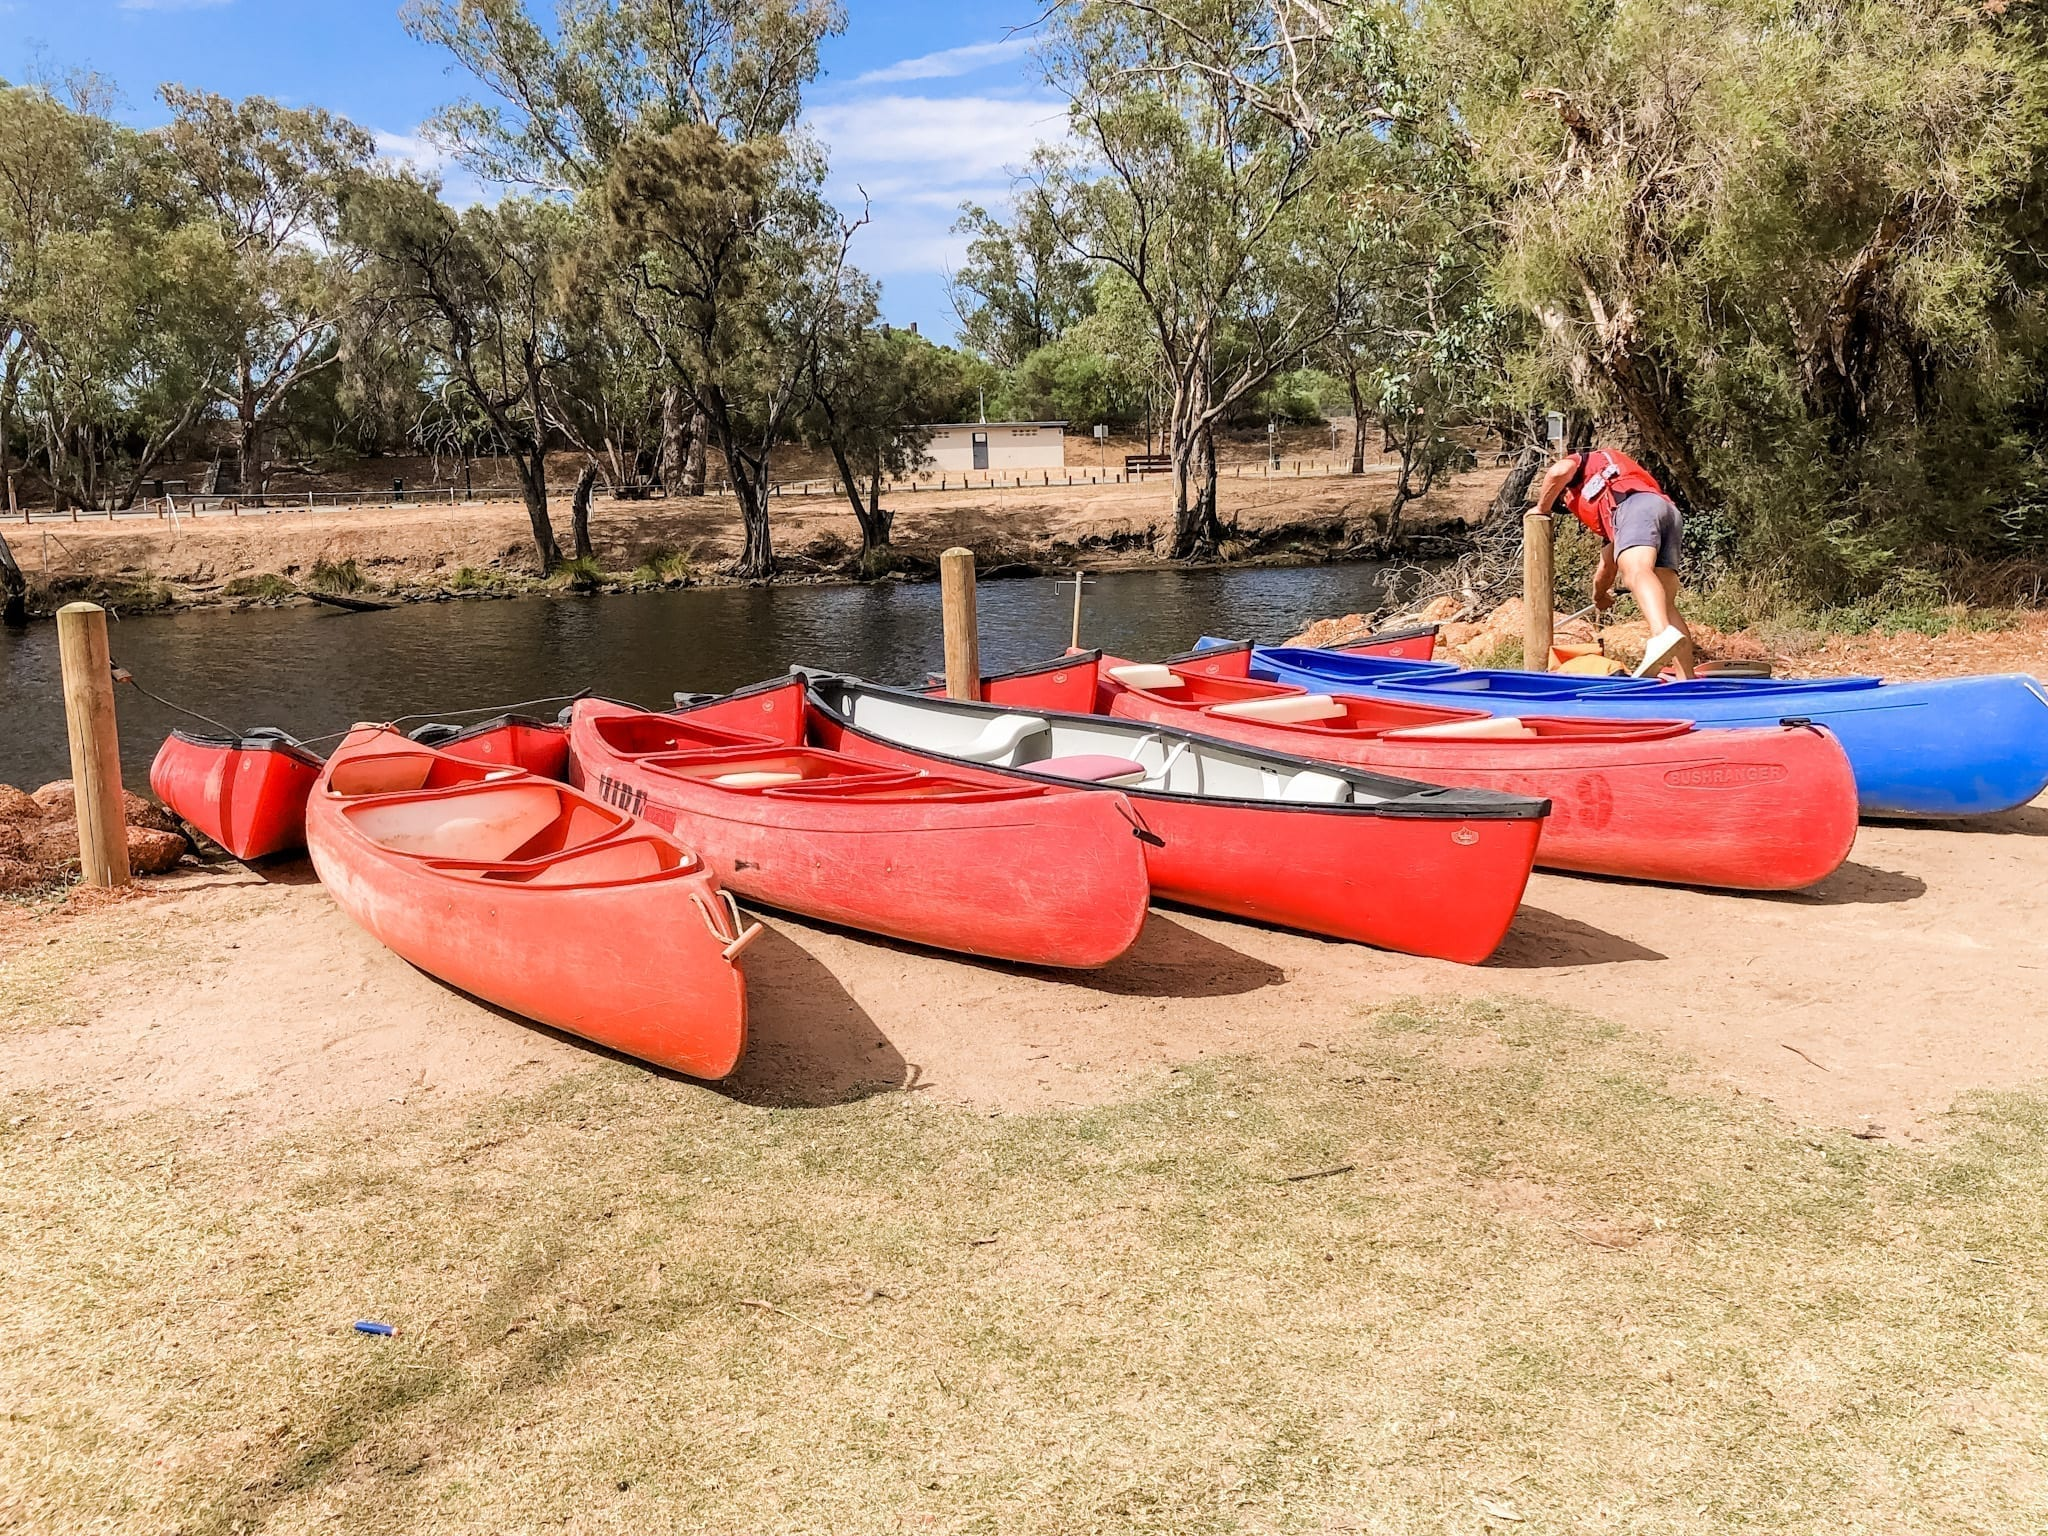 Swan valley Adventure Centre